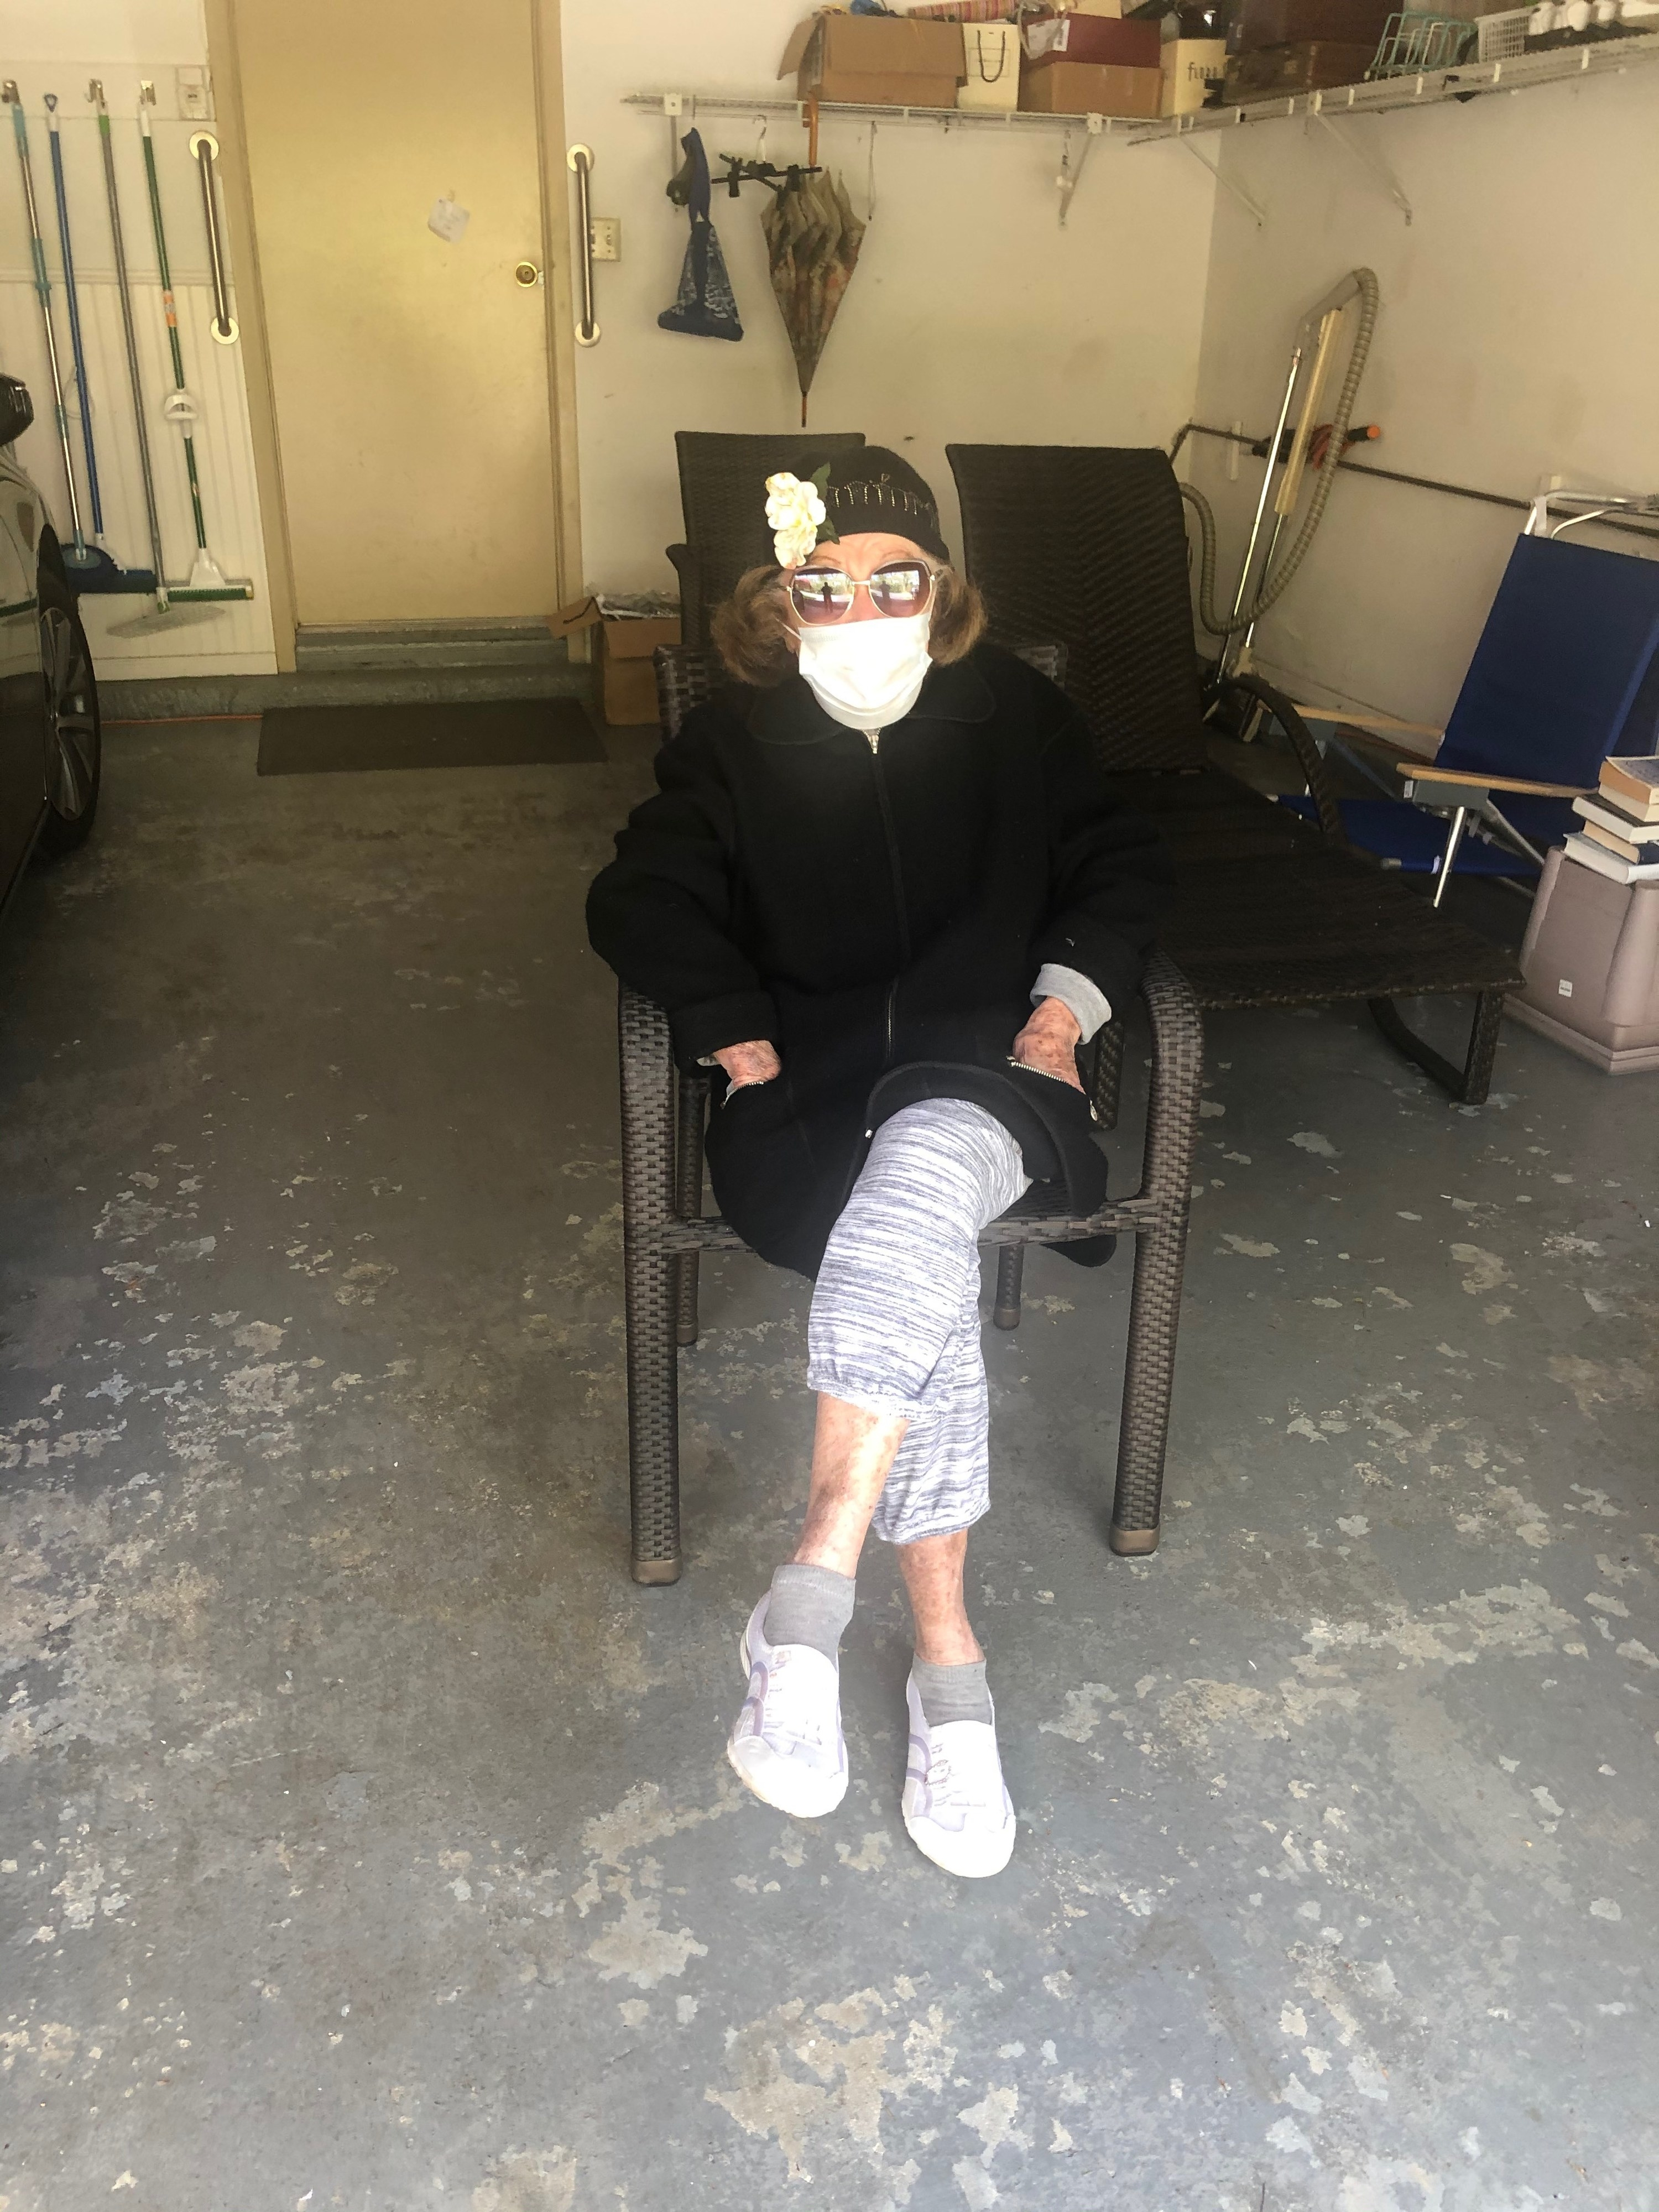 My grandmother sitting in her garage with visitors wearing a mask, a hat, and sunglasses.